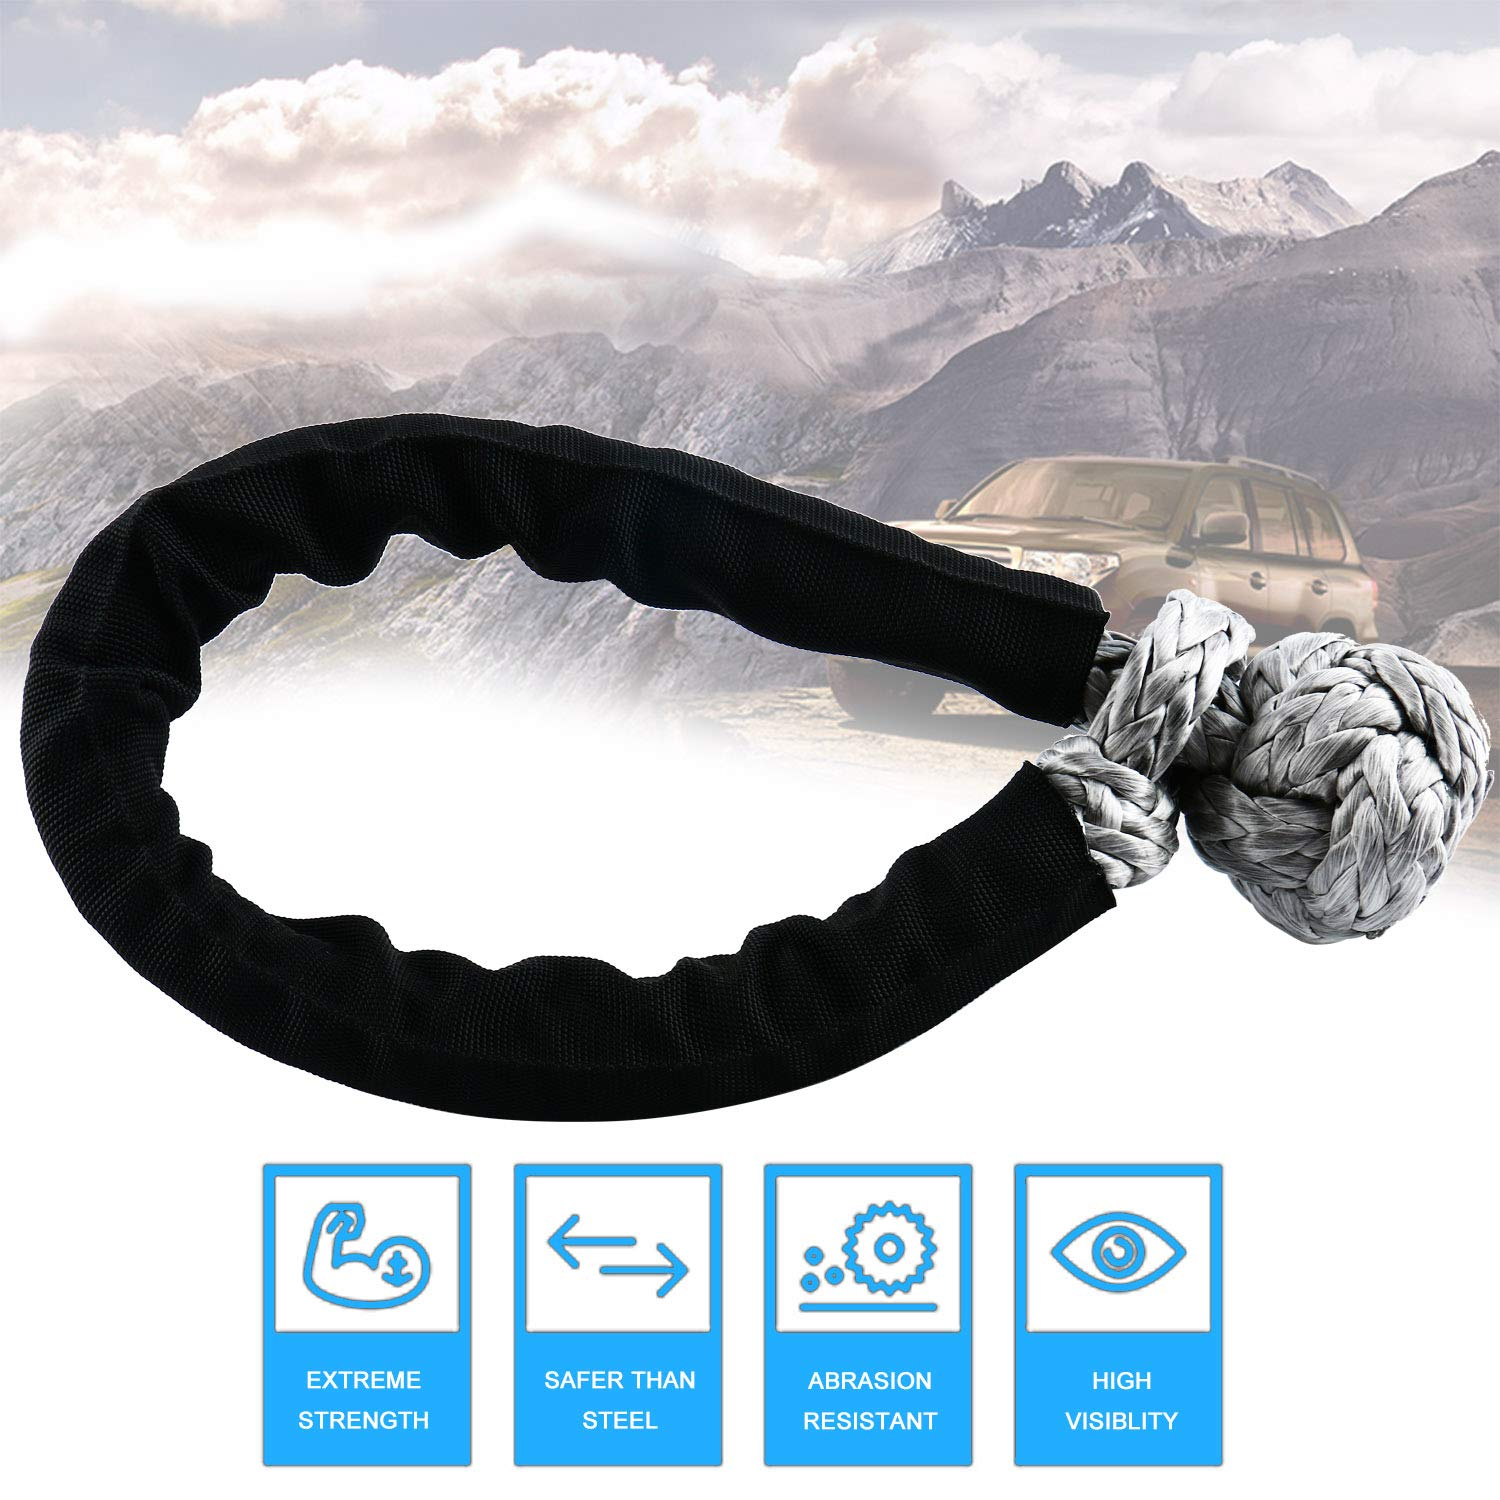 with Black Sleeve for 4 Off-Road ATV UTV Jeep Winch Ropes DasMarine Soft UHMWPE Shackle 5//16 x 16.5 5//16 x 16.5 12120LBS Breaking Strength